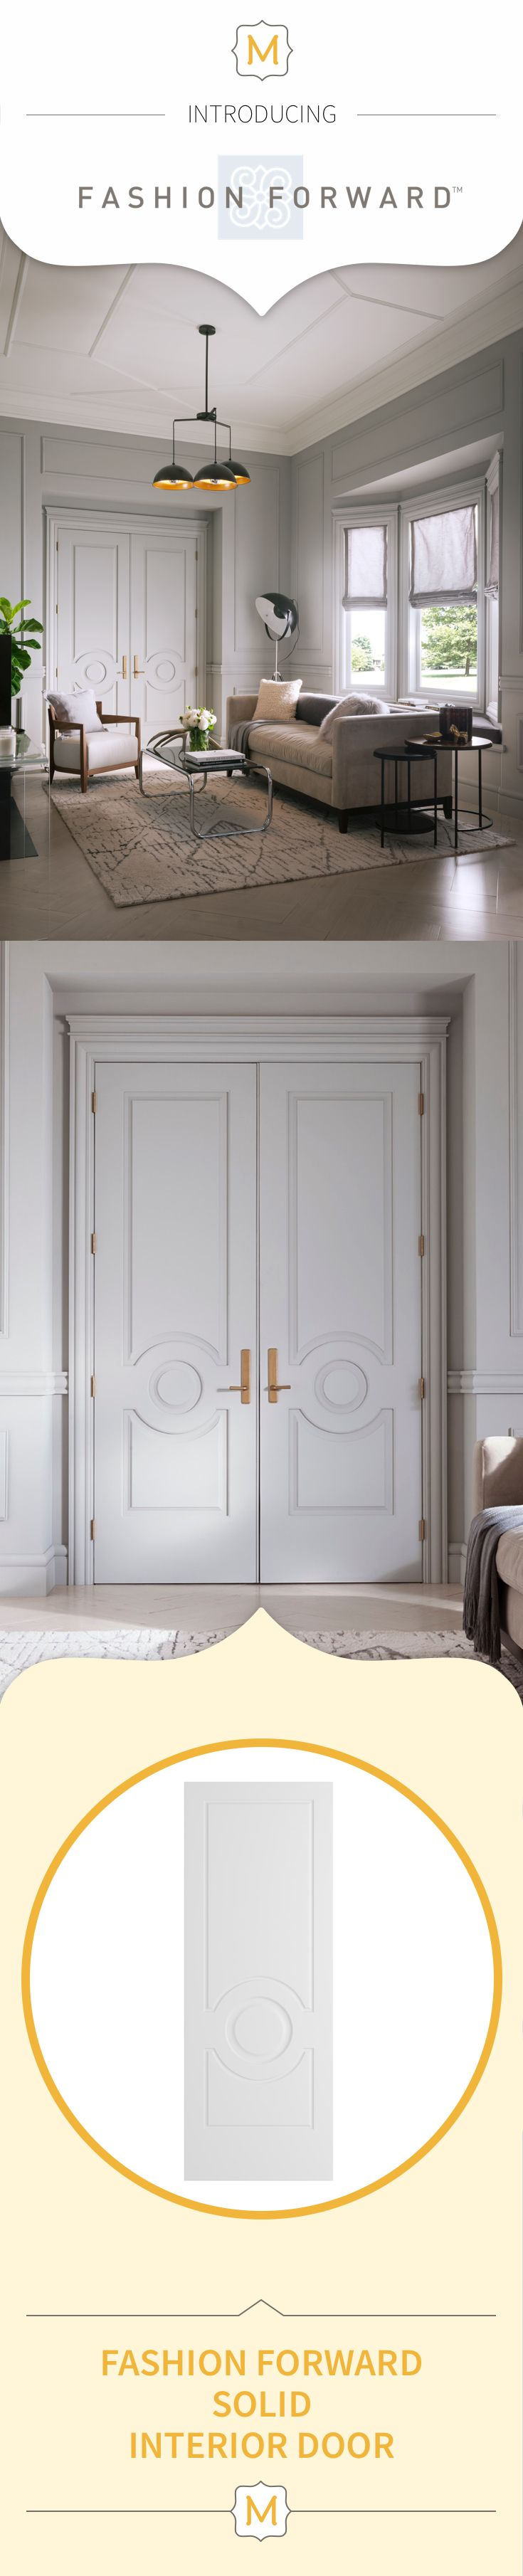 If you're looking for a modern door to bring an interesting element of design to the room, these Fashion Forward Collection interior doors from Metrie are the perfect fit.